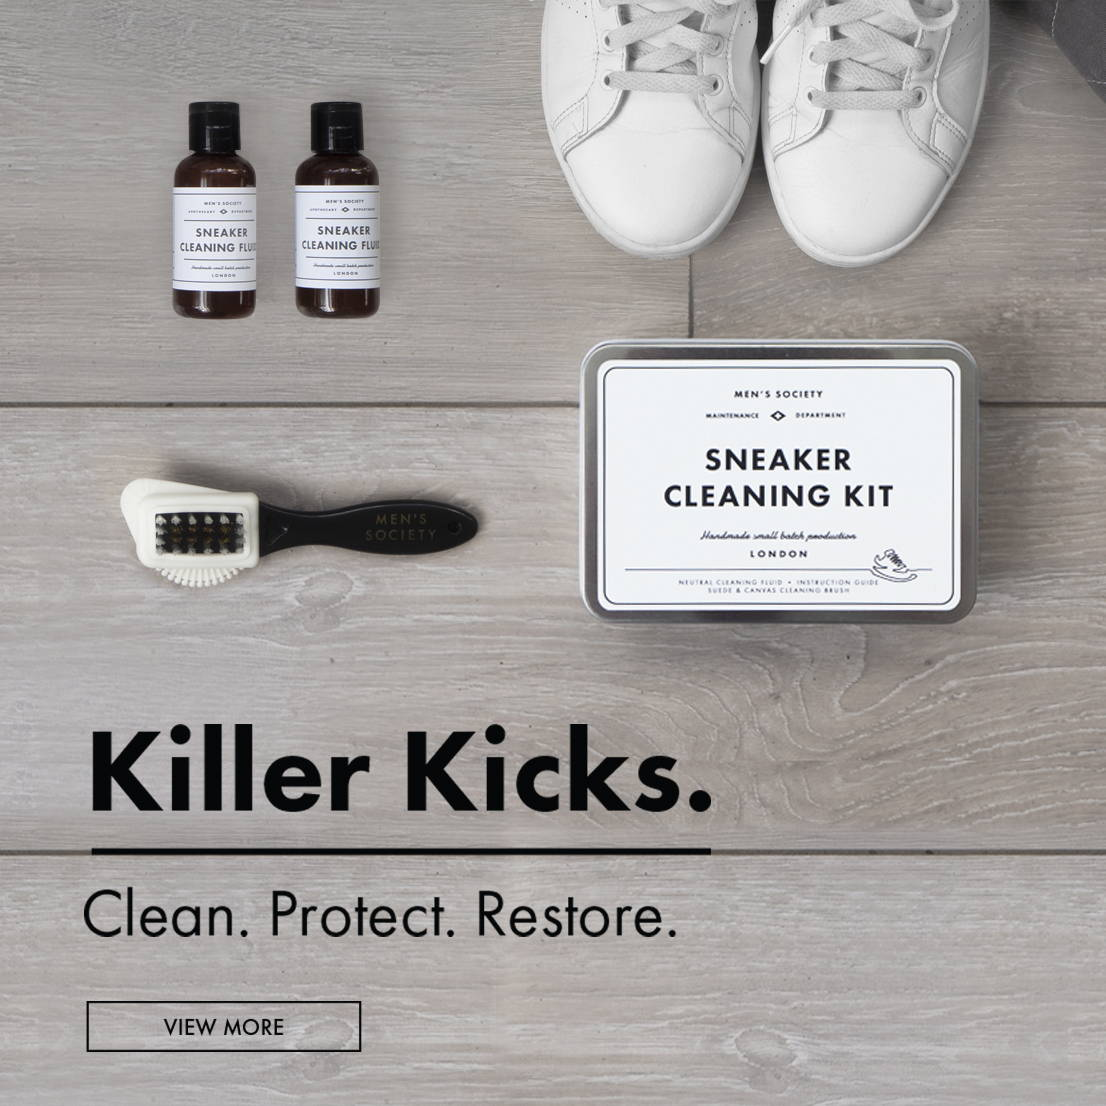 Sneaker cleaning gifts for men